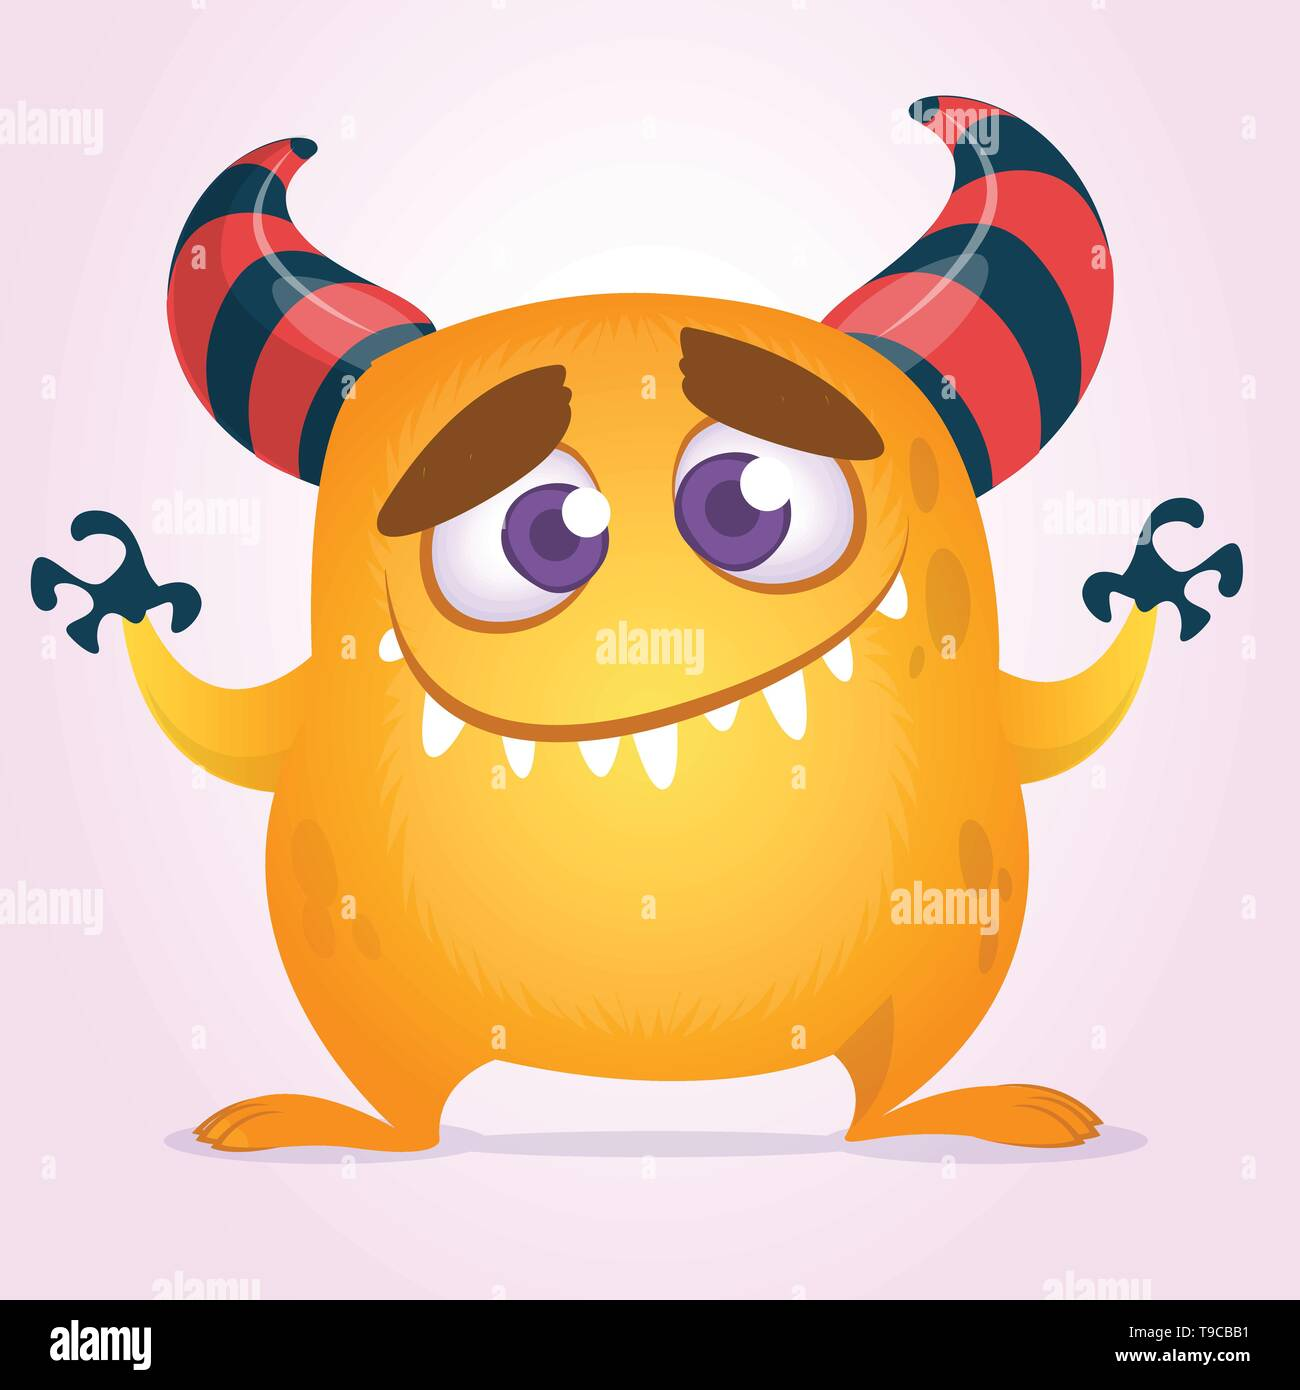 Happy cute cartoon monster with big mouth. Vector orange monster illustration. Halloween character design isolated - Stock Image